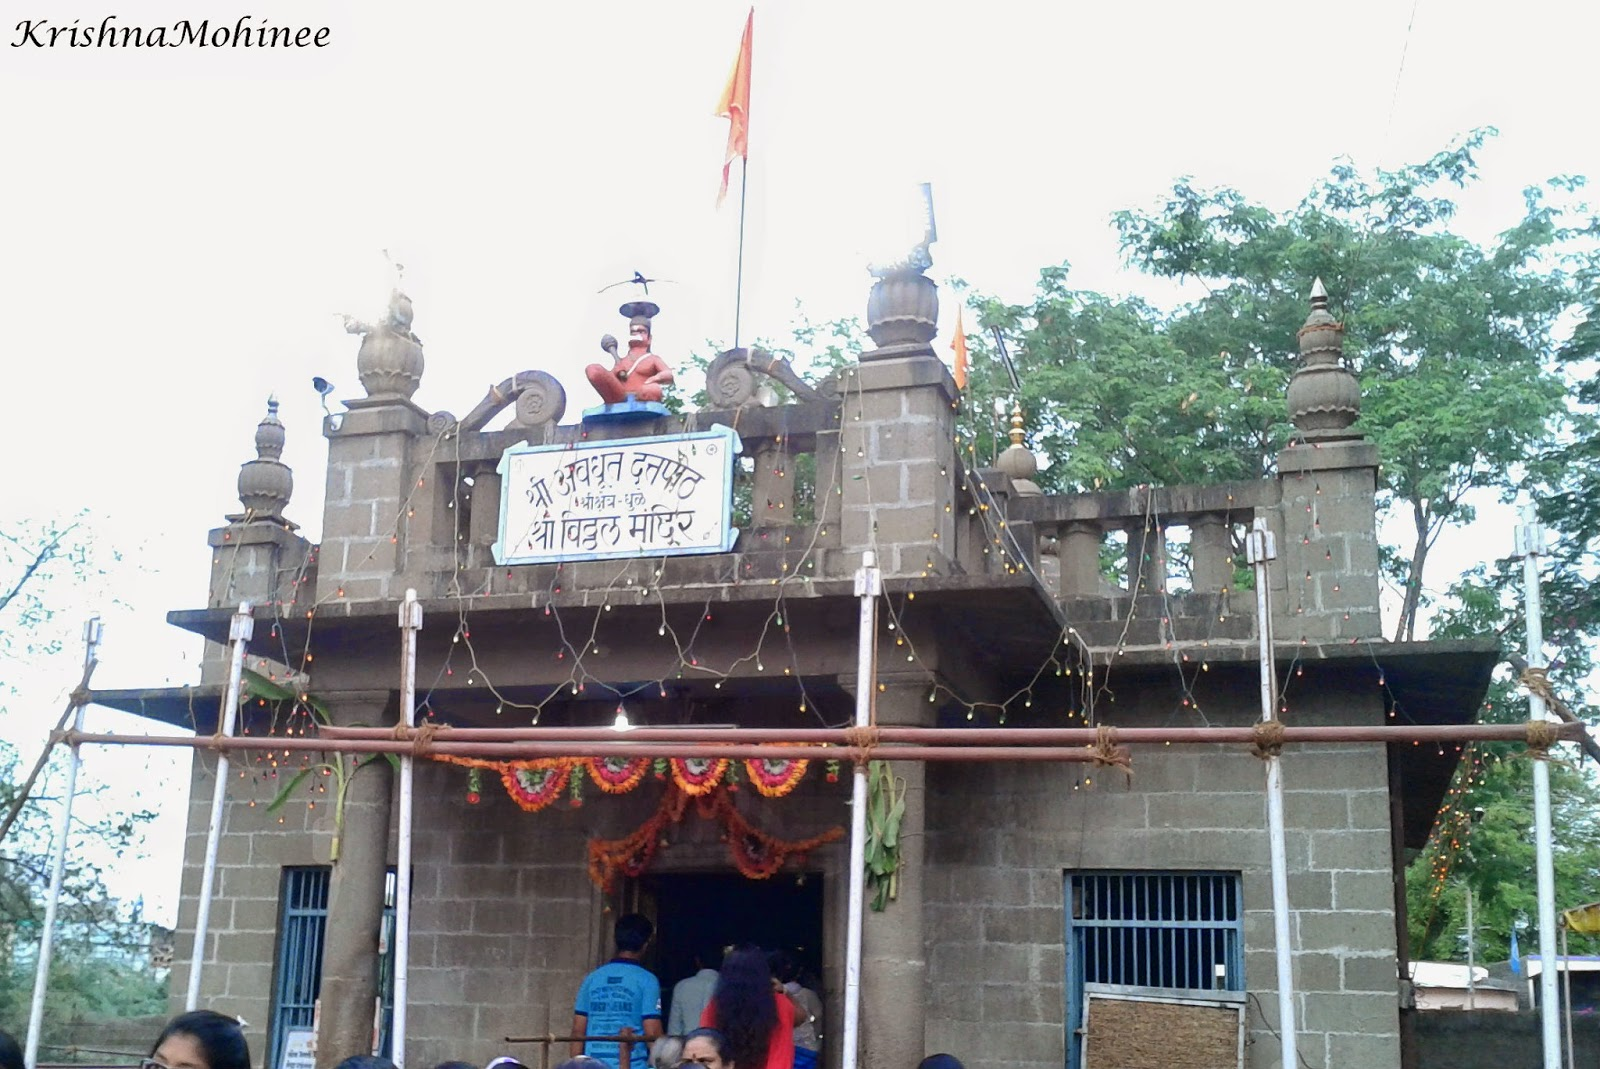 Image : Front side of Lord Vitthala Temple decorated with flowers and lights. Bhagwan Hanumanji Moorti just about the Door with Saffron Flags